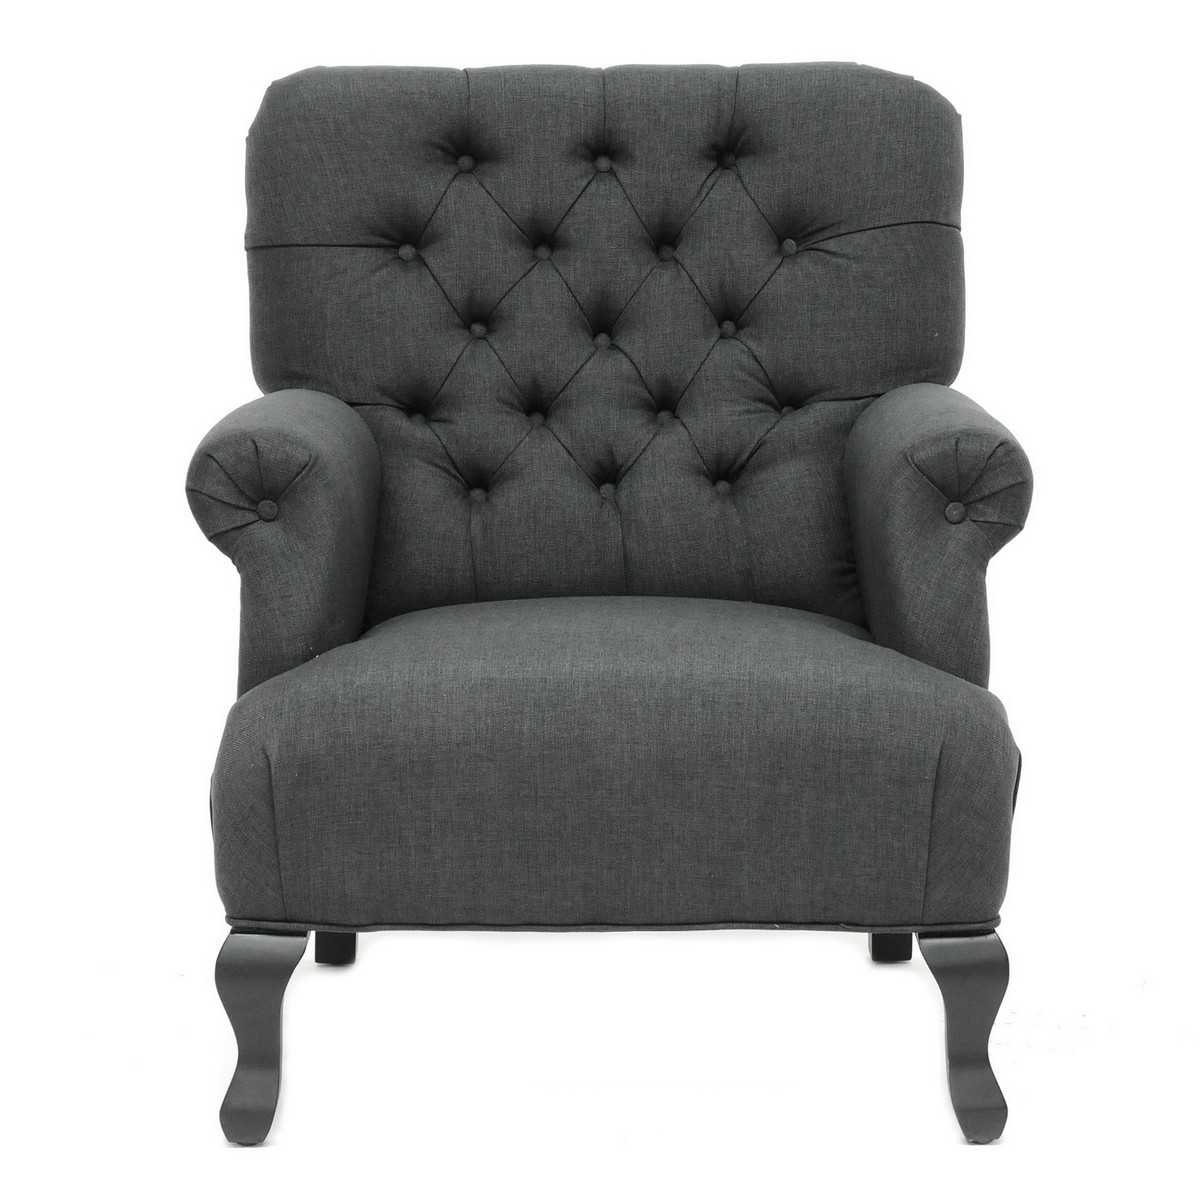 TOV Furniture York Grey Linen Club Chair